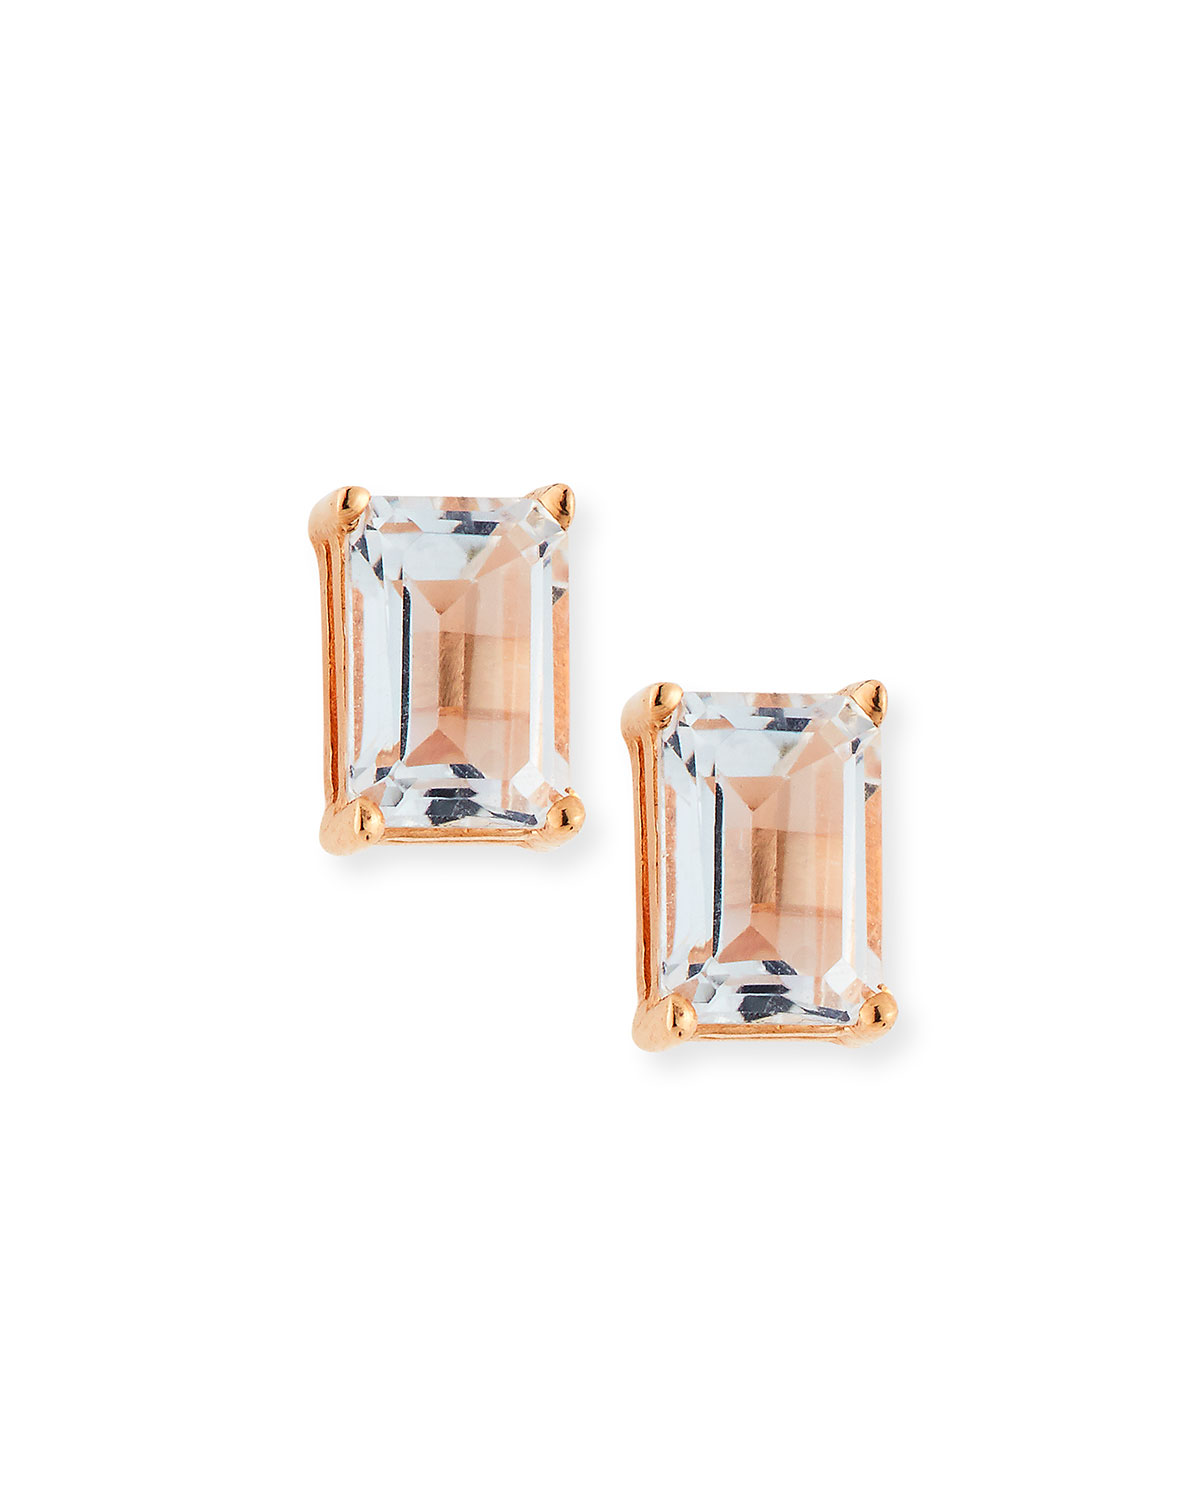 Suzanne Kalan 14k Emerald-Cut White Topaz Stud Earrings qnIHg